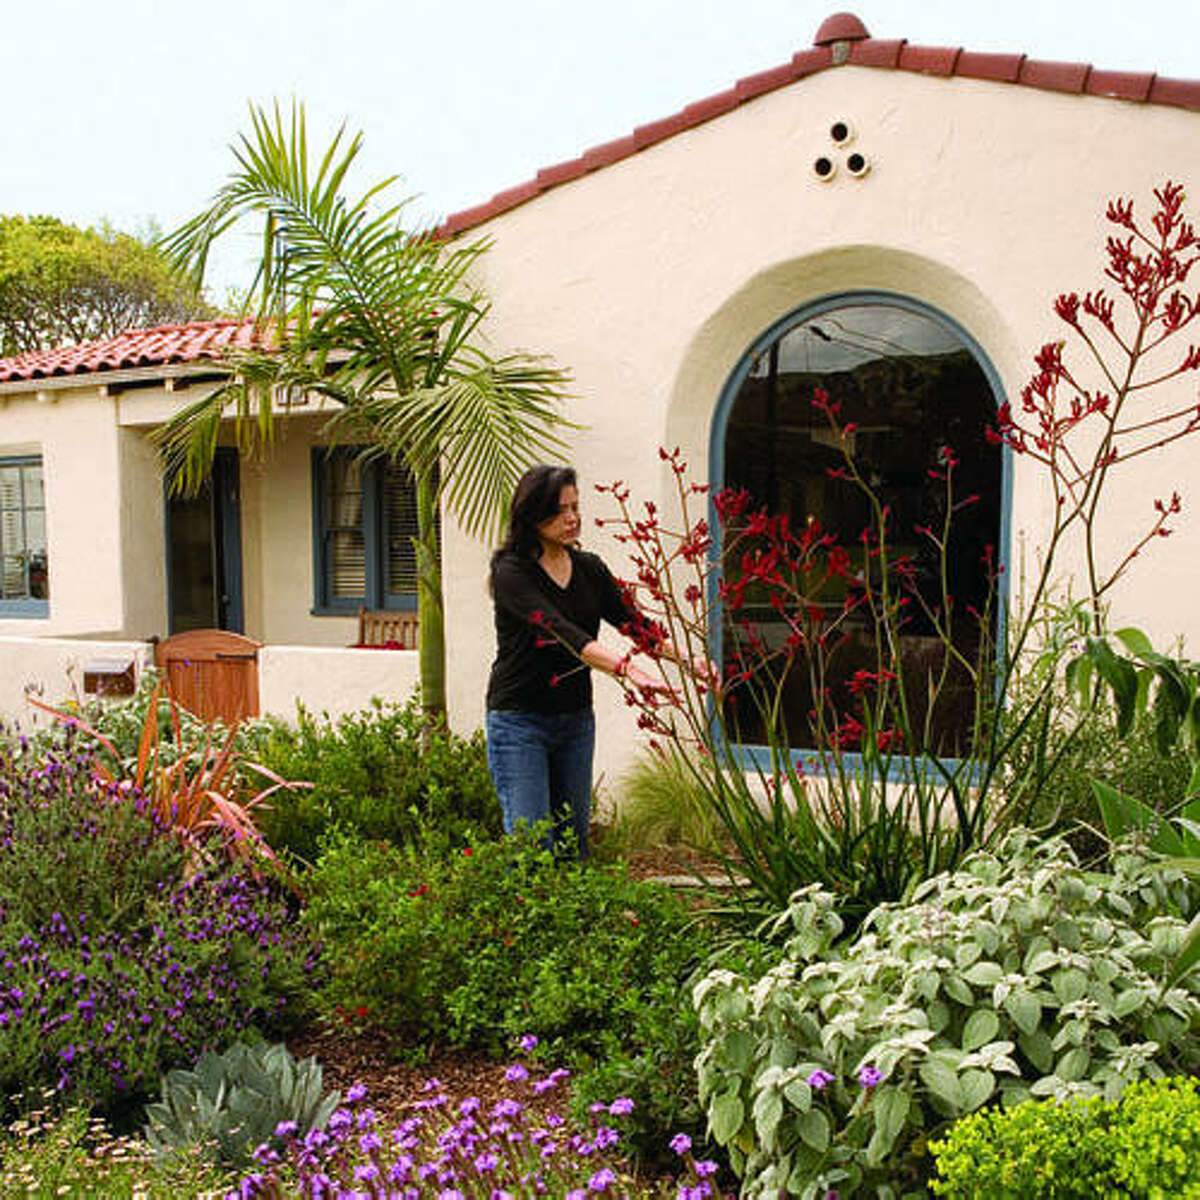 Lawnless in Ventura, CA Water-conserving gardens can be as colorful as any other. The front yard of Rick Cole, Ventura's city manager, is blooming proof. Get planting ideas from this Southern California garden